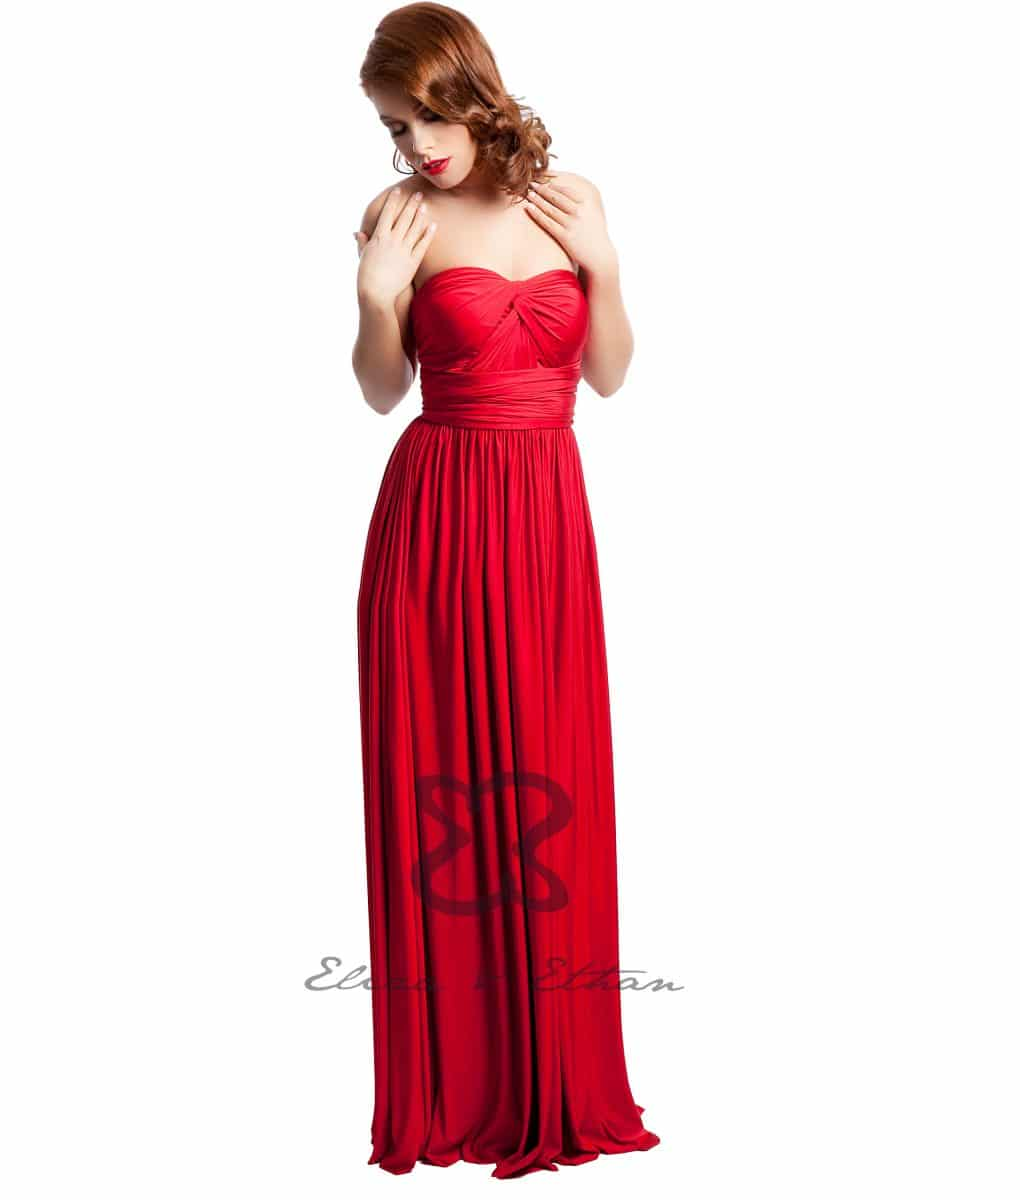 Ruby-Eliza-and-Ethan-Multiwrap-Dress